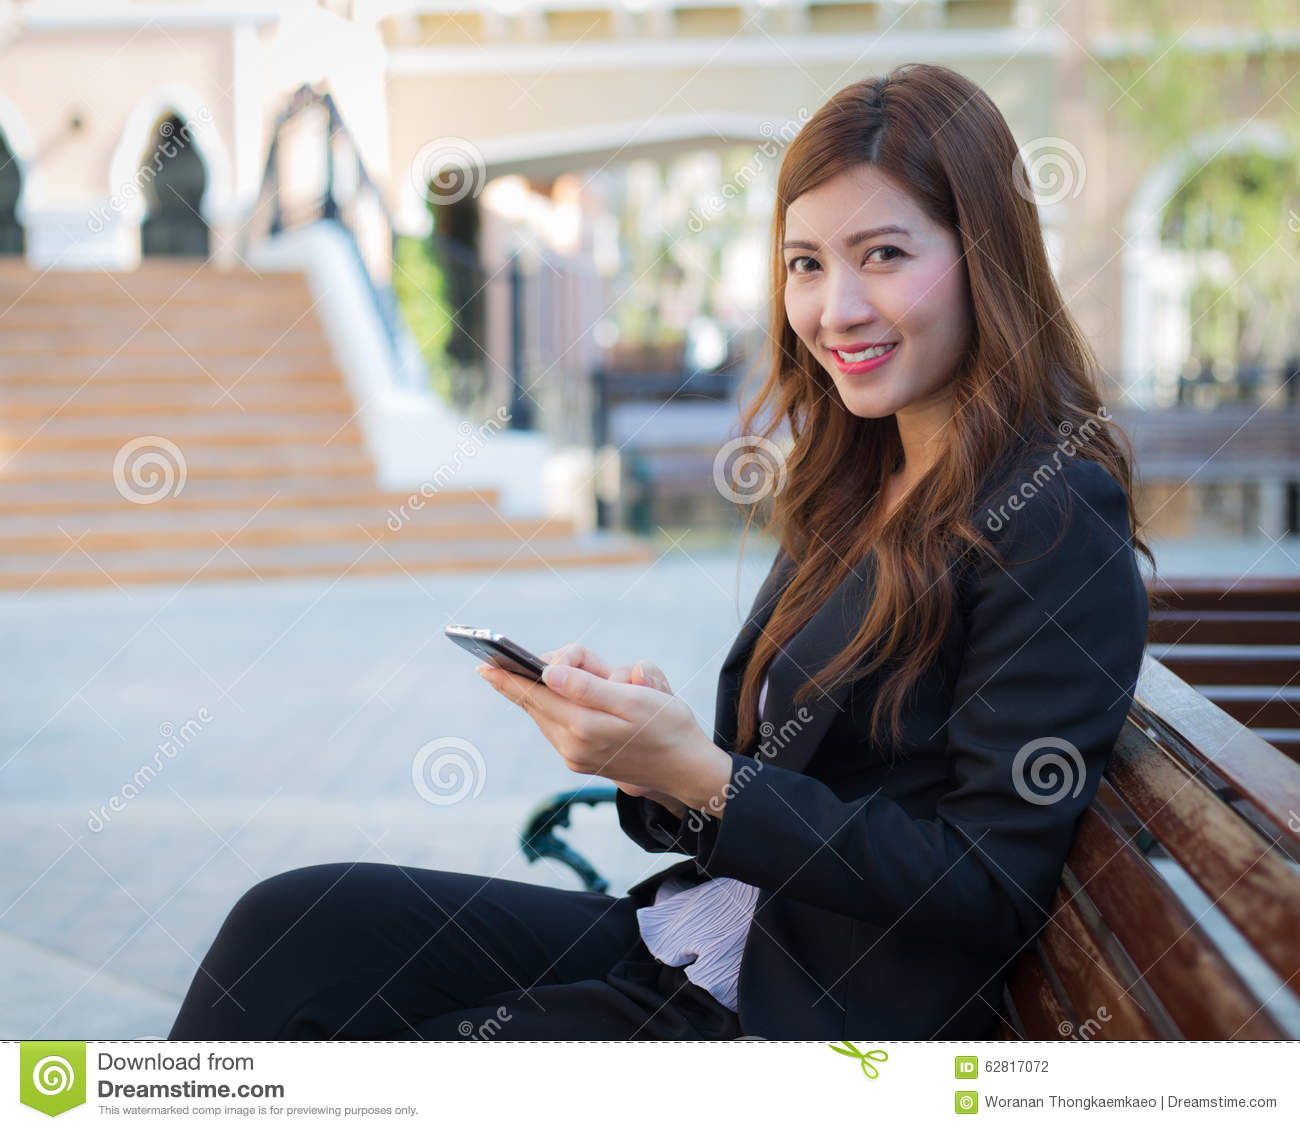 Businesswoman With Smiling Face Sitting On Bench Stock Photo ...